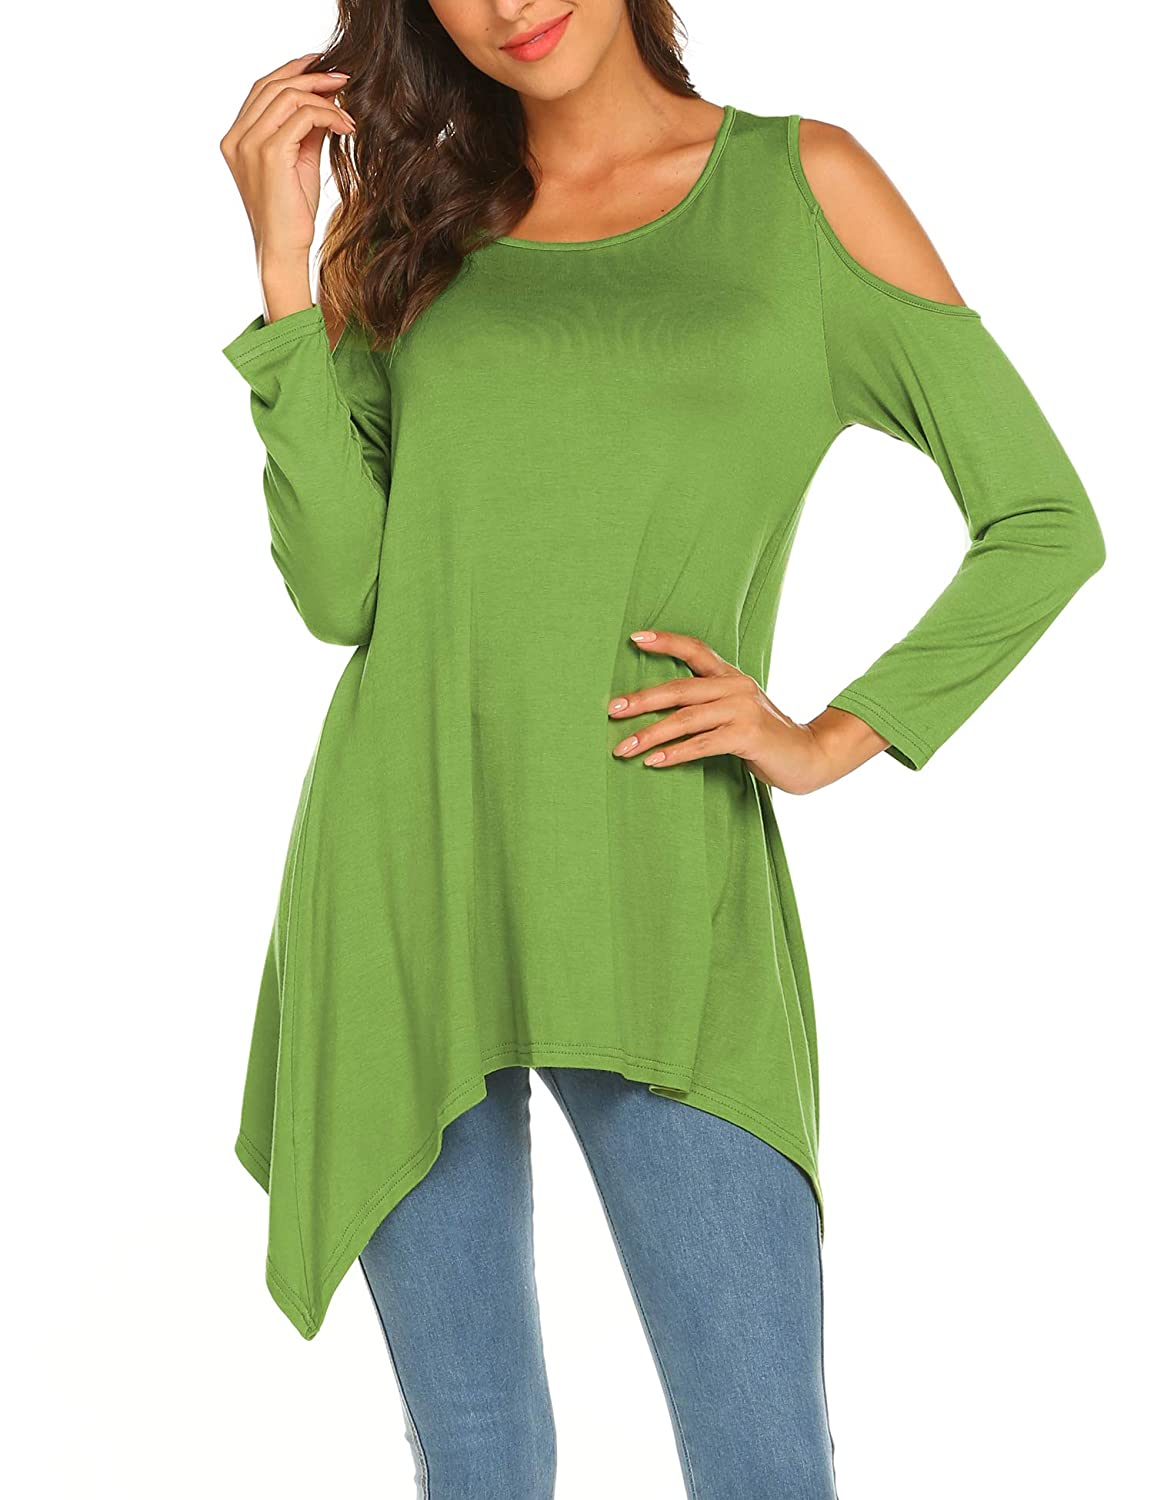 fbda34270be Womens Solid Color Asymmetrical Swing Blouses Long Sleeve Tunic Tops Loose  Casual T Shirt at Amazon Women's Clothing store: